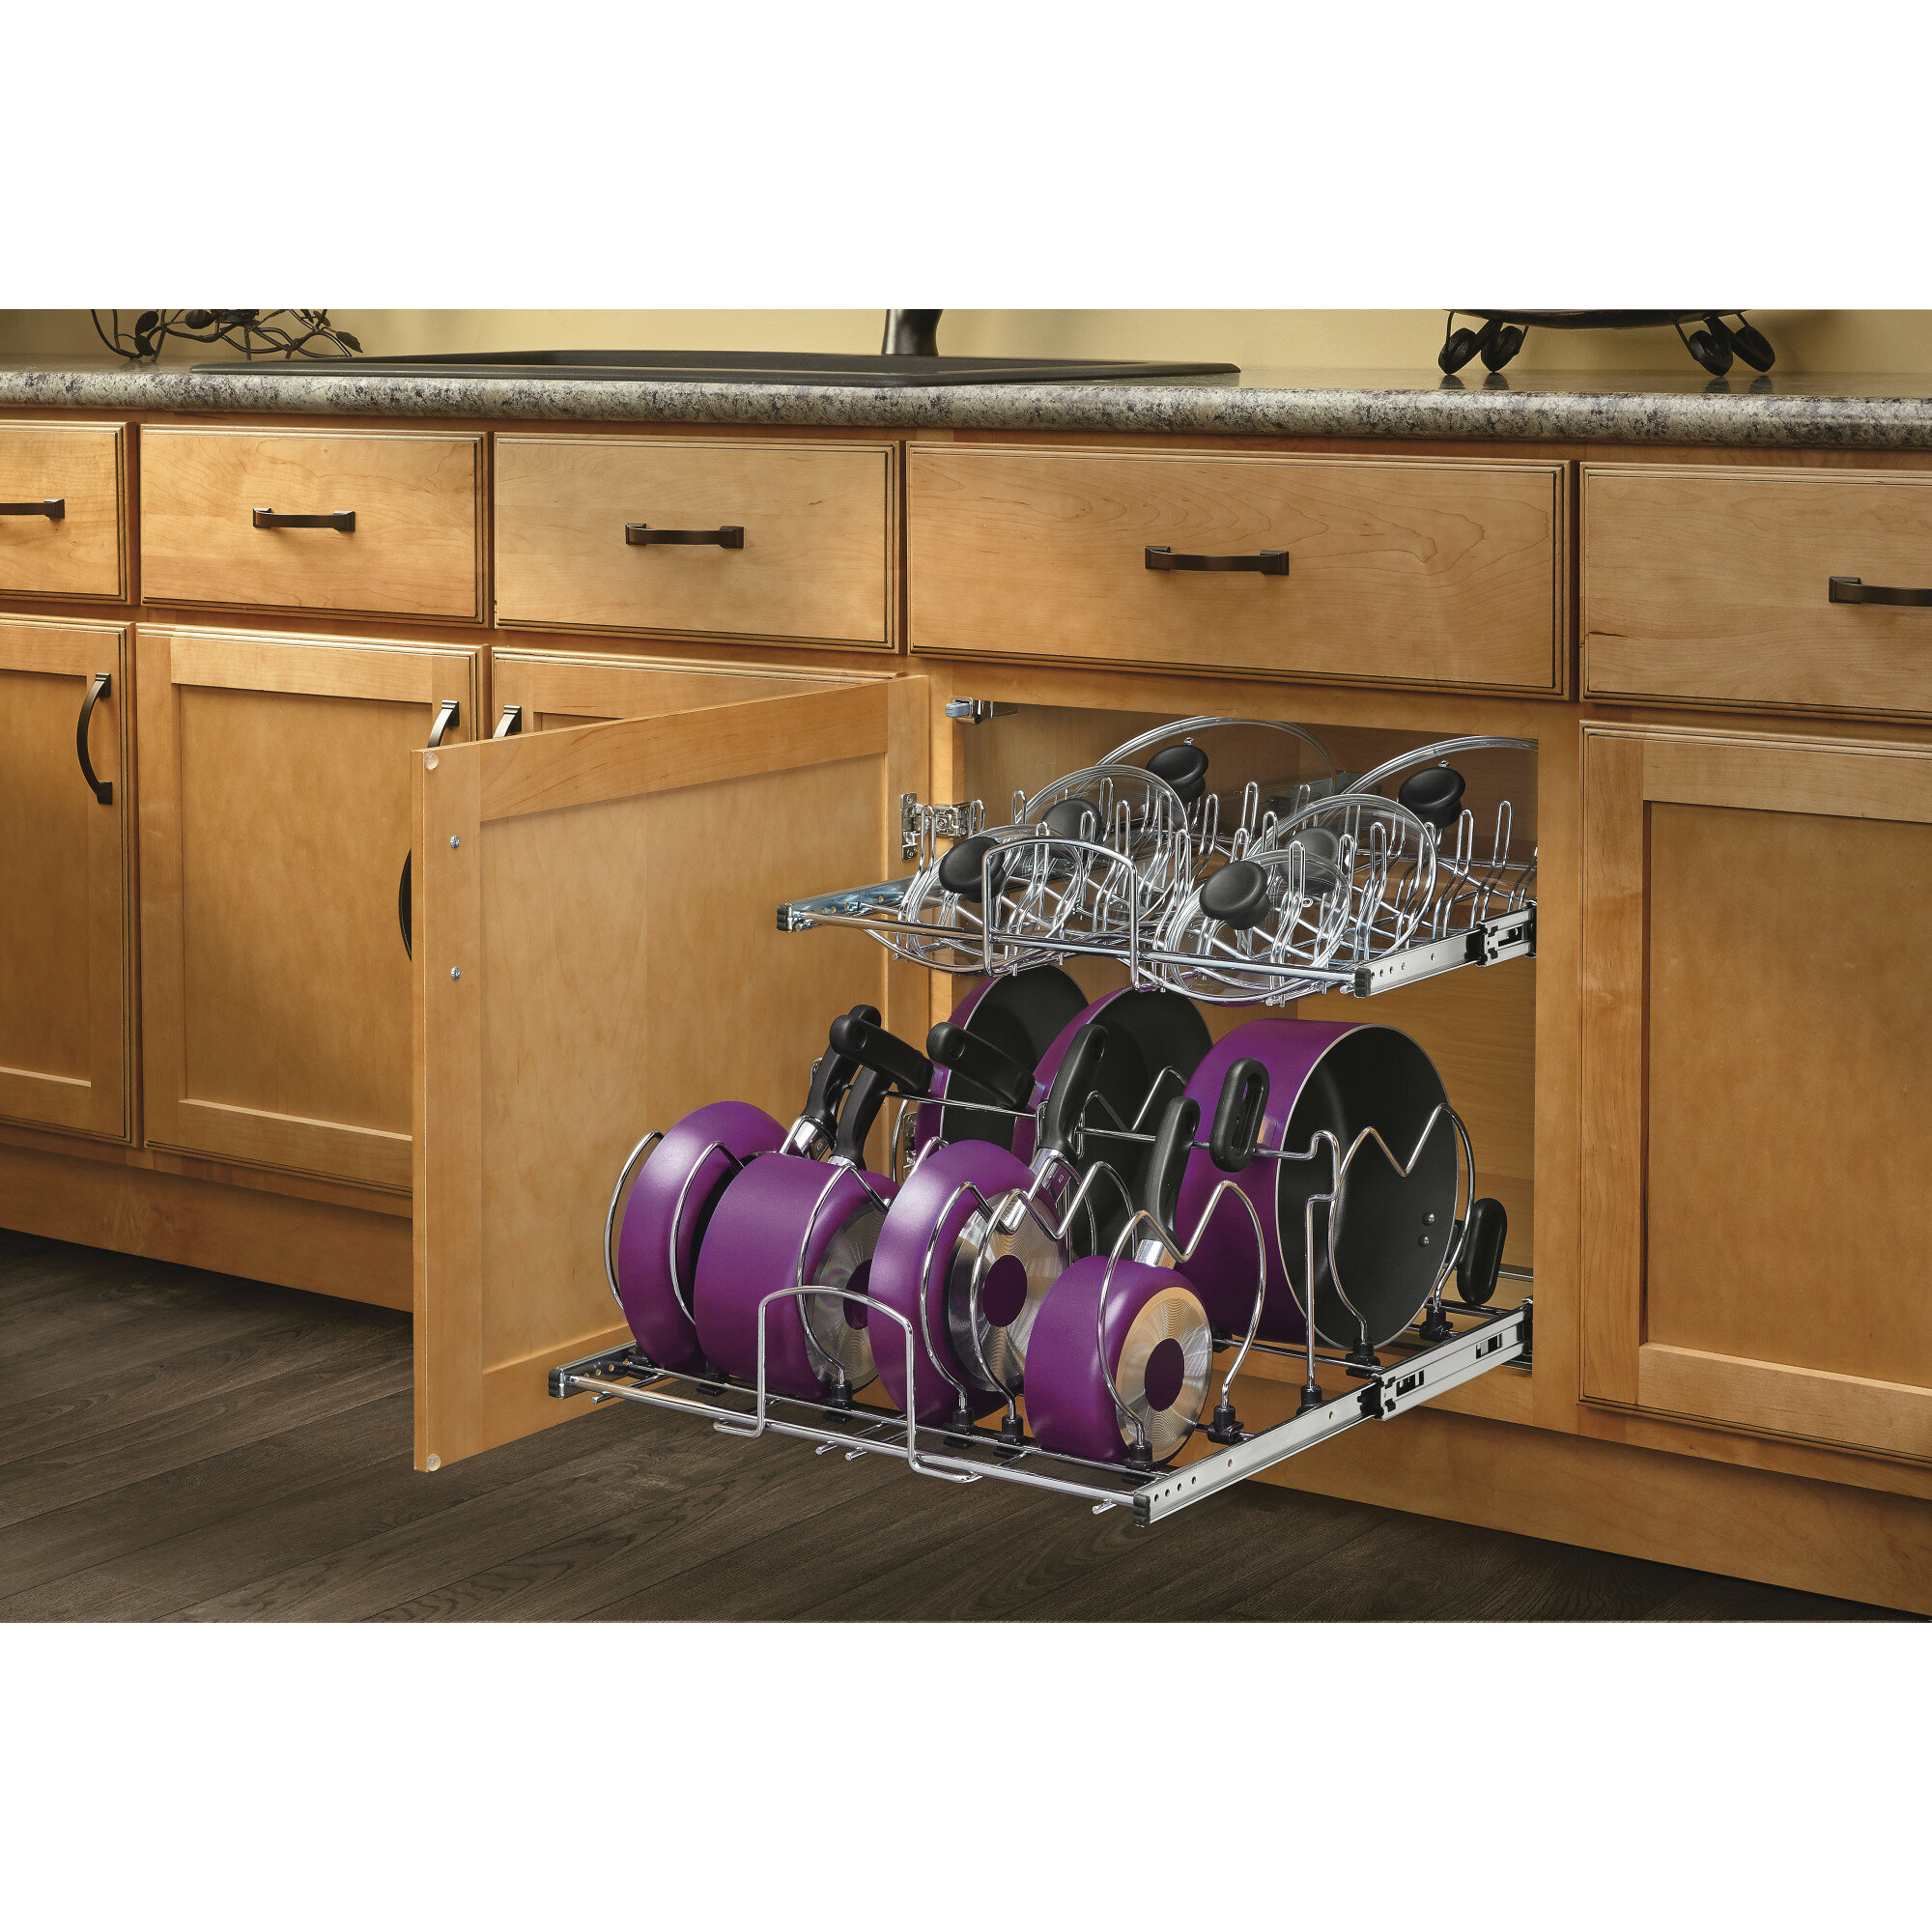 Rev A Shelf 2 Tier Pull Out Kitchenware Divider Reviews Wayfair